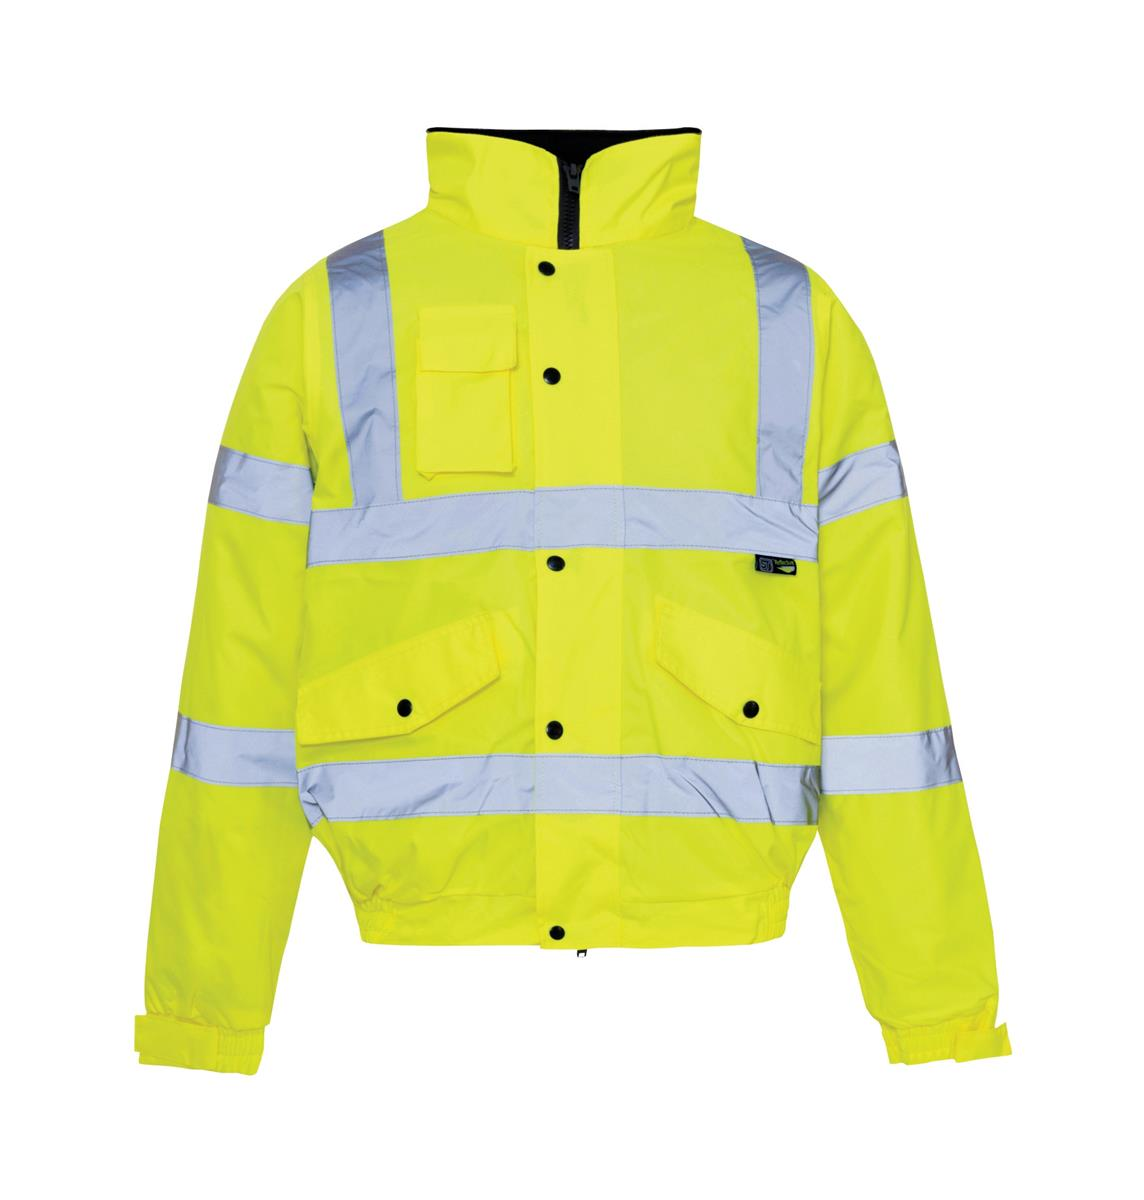 ST High Vis Standard Jacket Storm Bomber Warm Padded Lining Large Yellow Ref 36843 *Approx 3 Day L/Time*